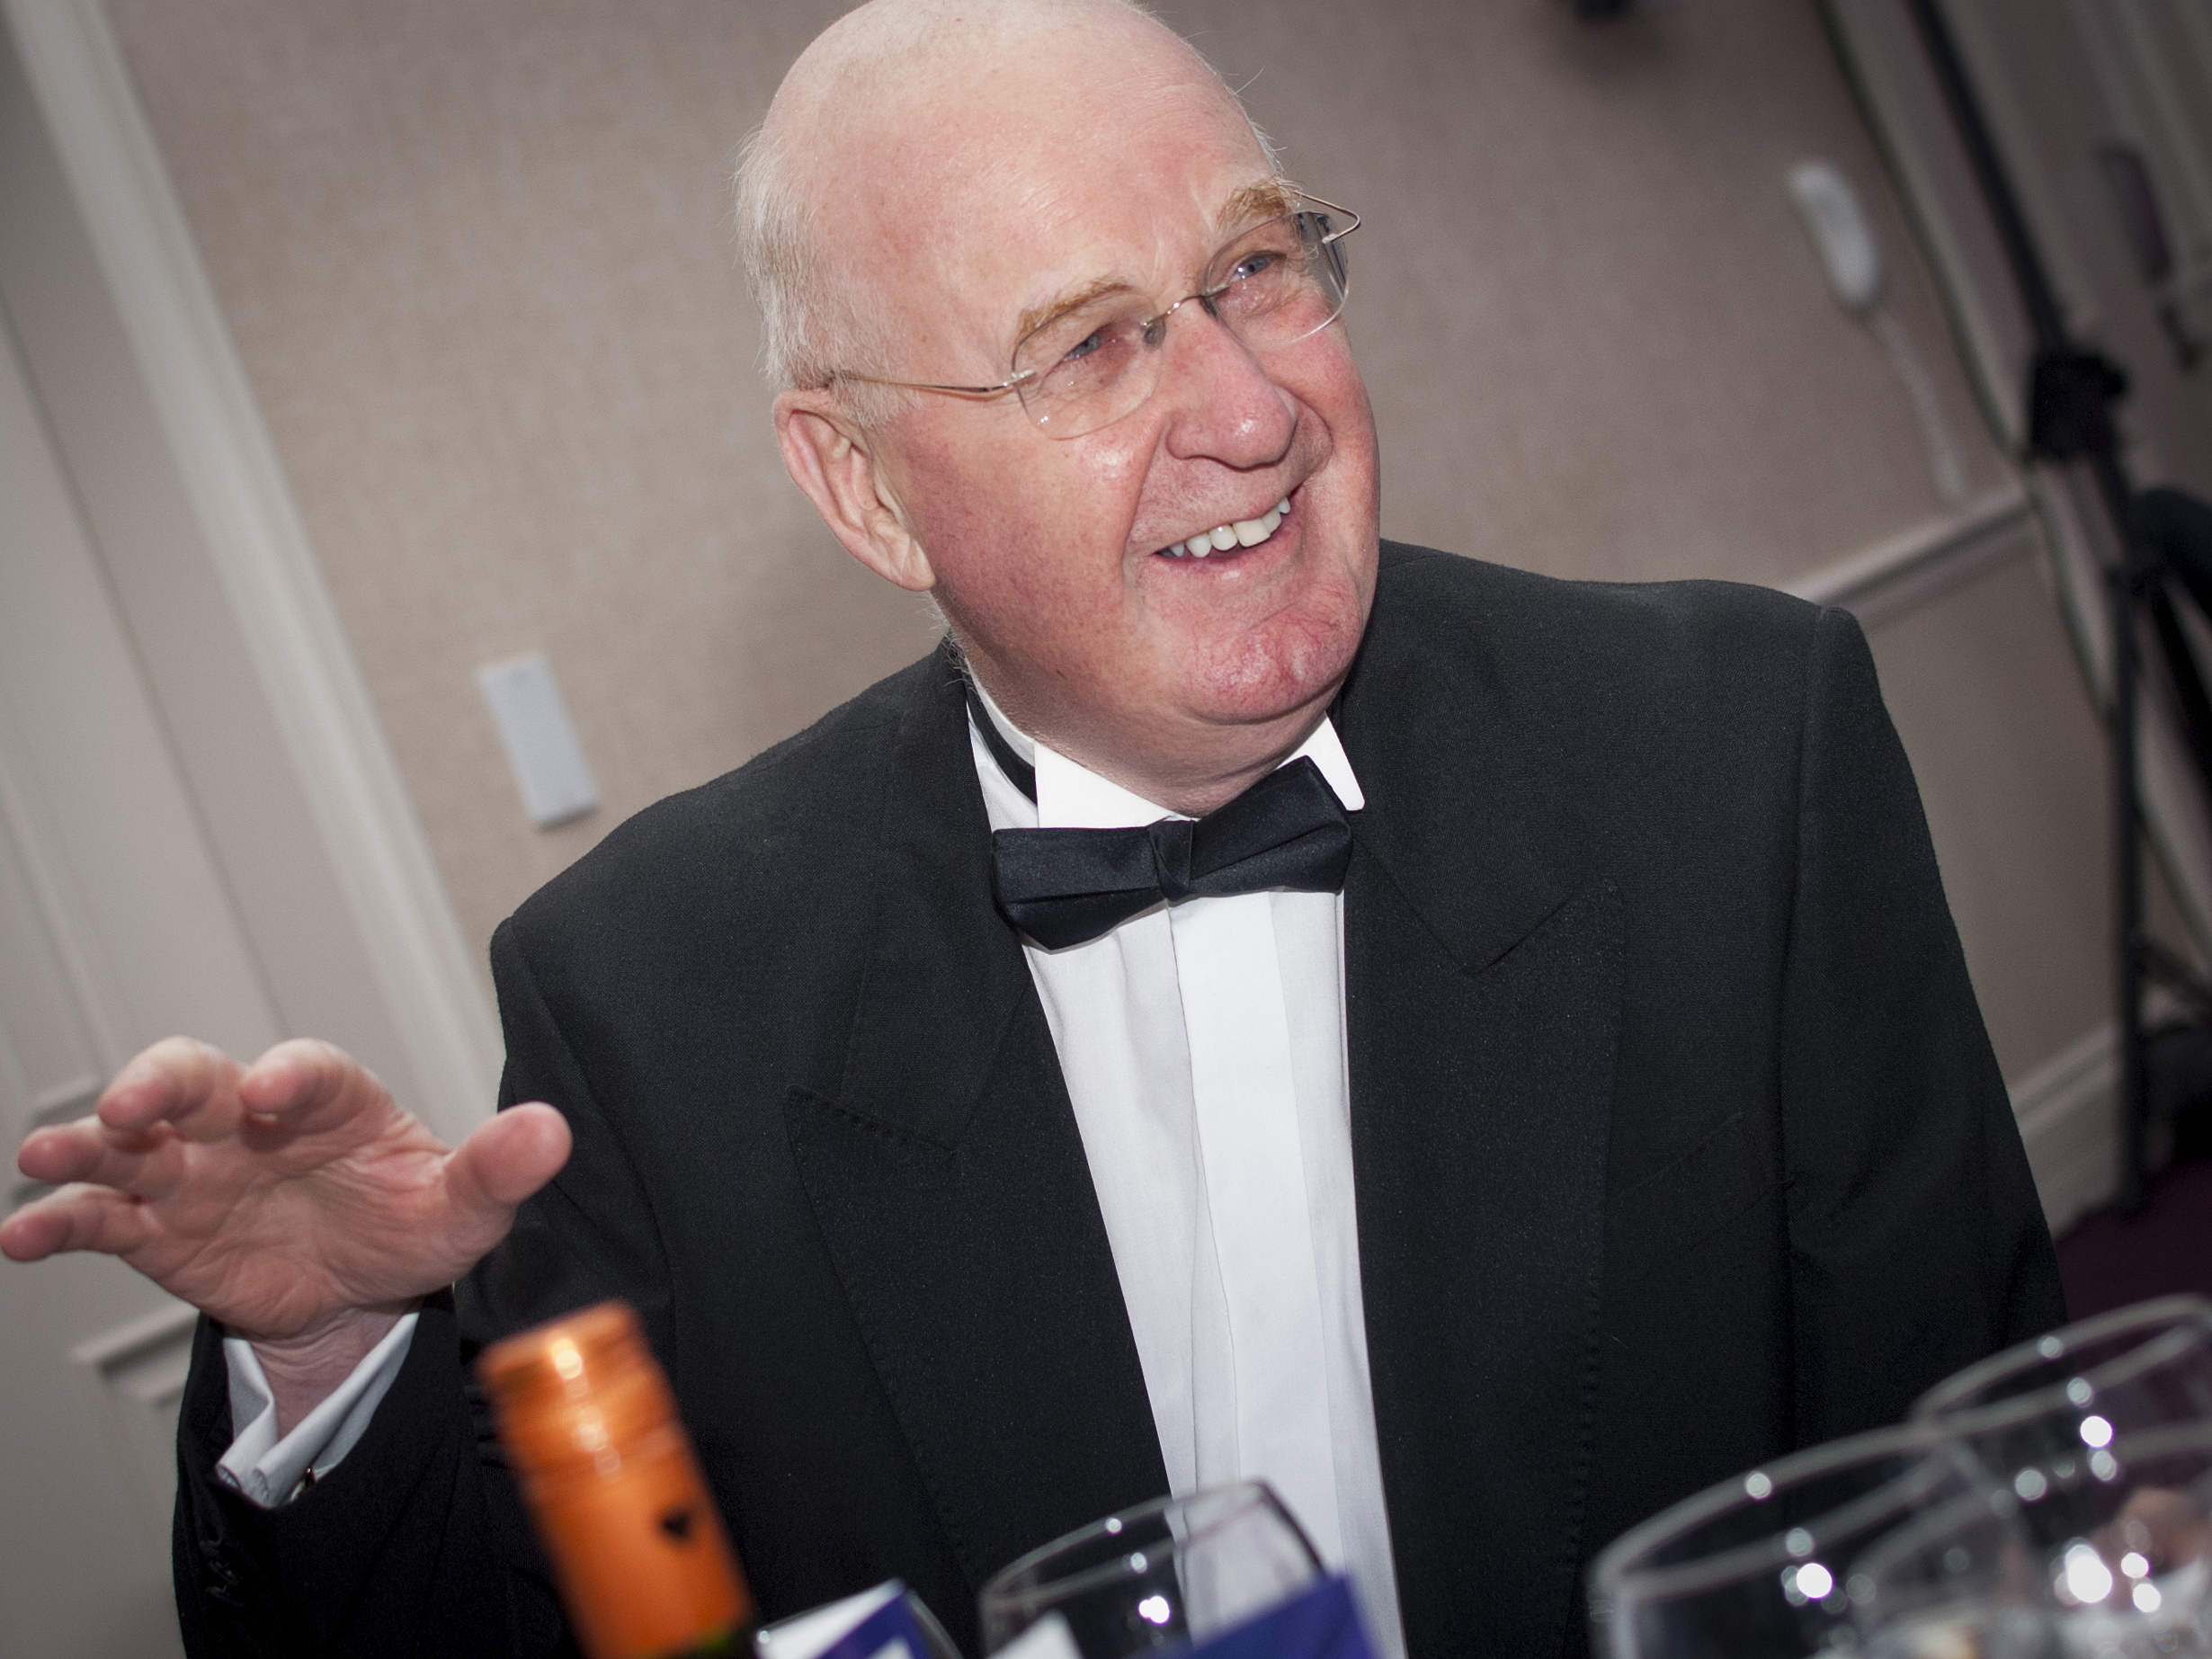 John Steele enjoys a night of celebration for PerryGolf Co-Founder, Colin Dalgleish for his receipt of a Special Recognition Award at the 2015 Scottish Golf Tourism Awards